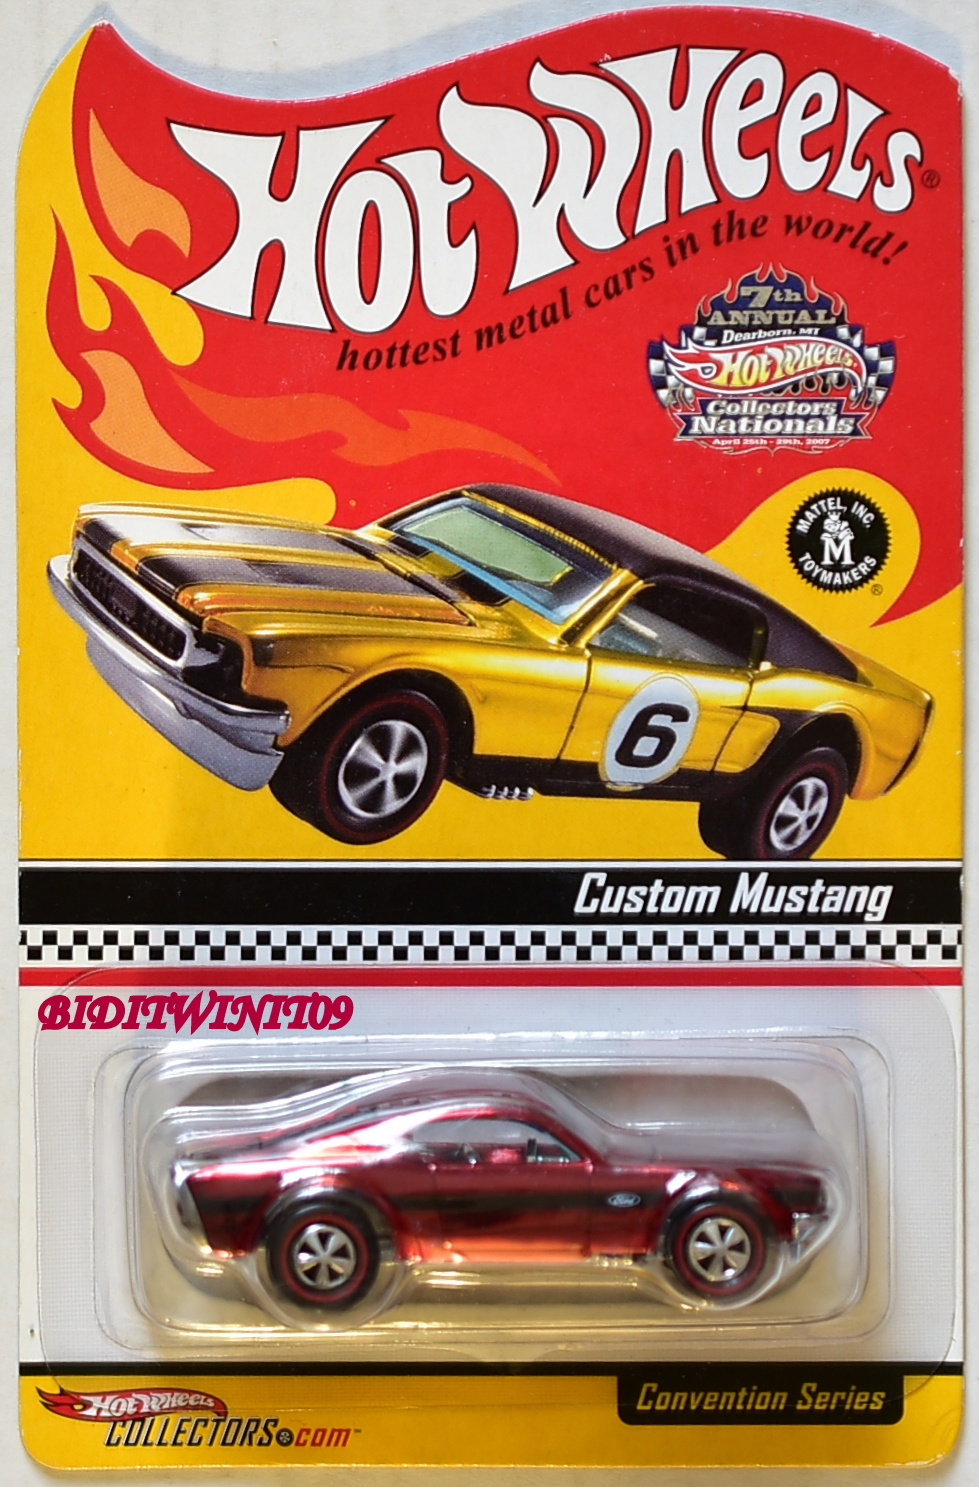 HOT WHEELS 2007 7th ANNUAL COLLECTORS NATIONALS CONVENTION CUSTOM MUSTANG E+